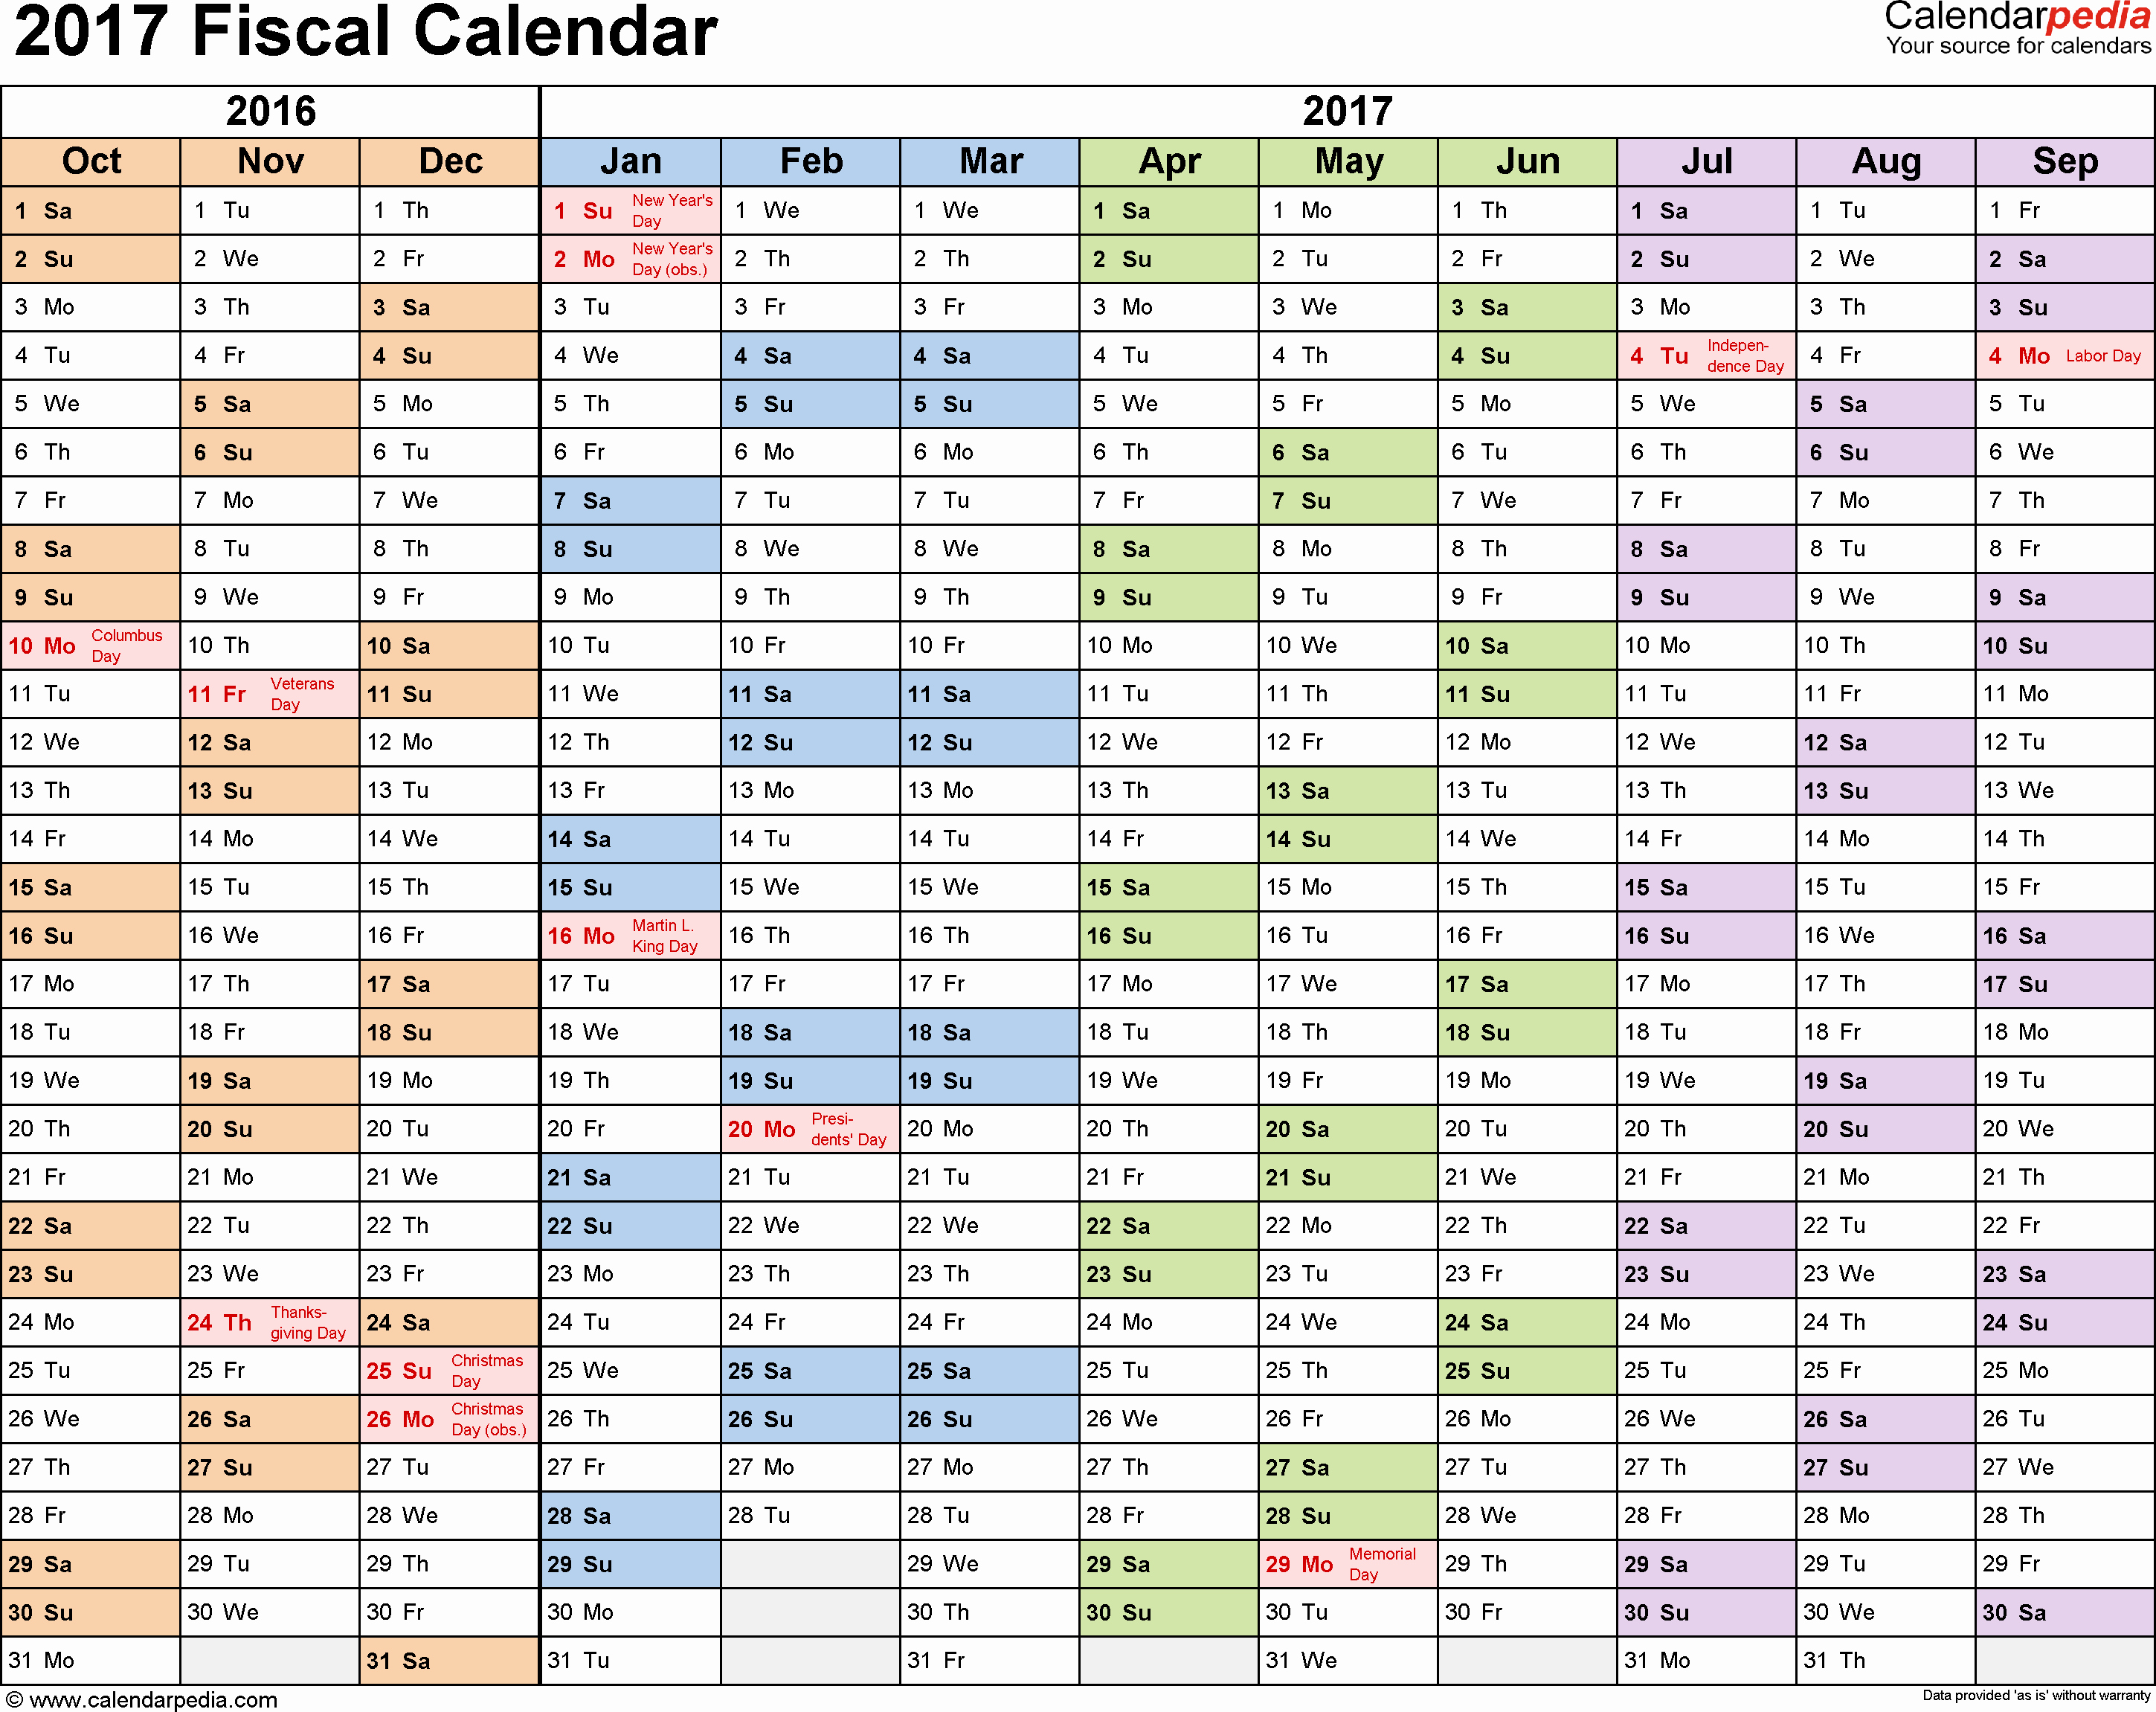 2017 Yearly Calendar Excel Template Beautiful Fiscal Calendars 2017 as Free Printable Excel Templates